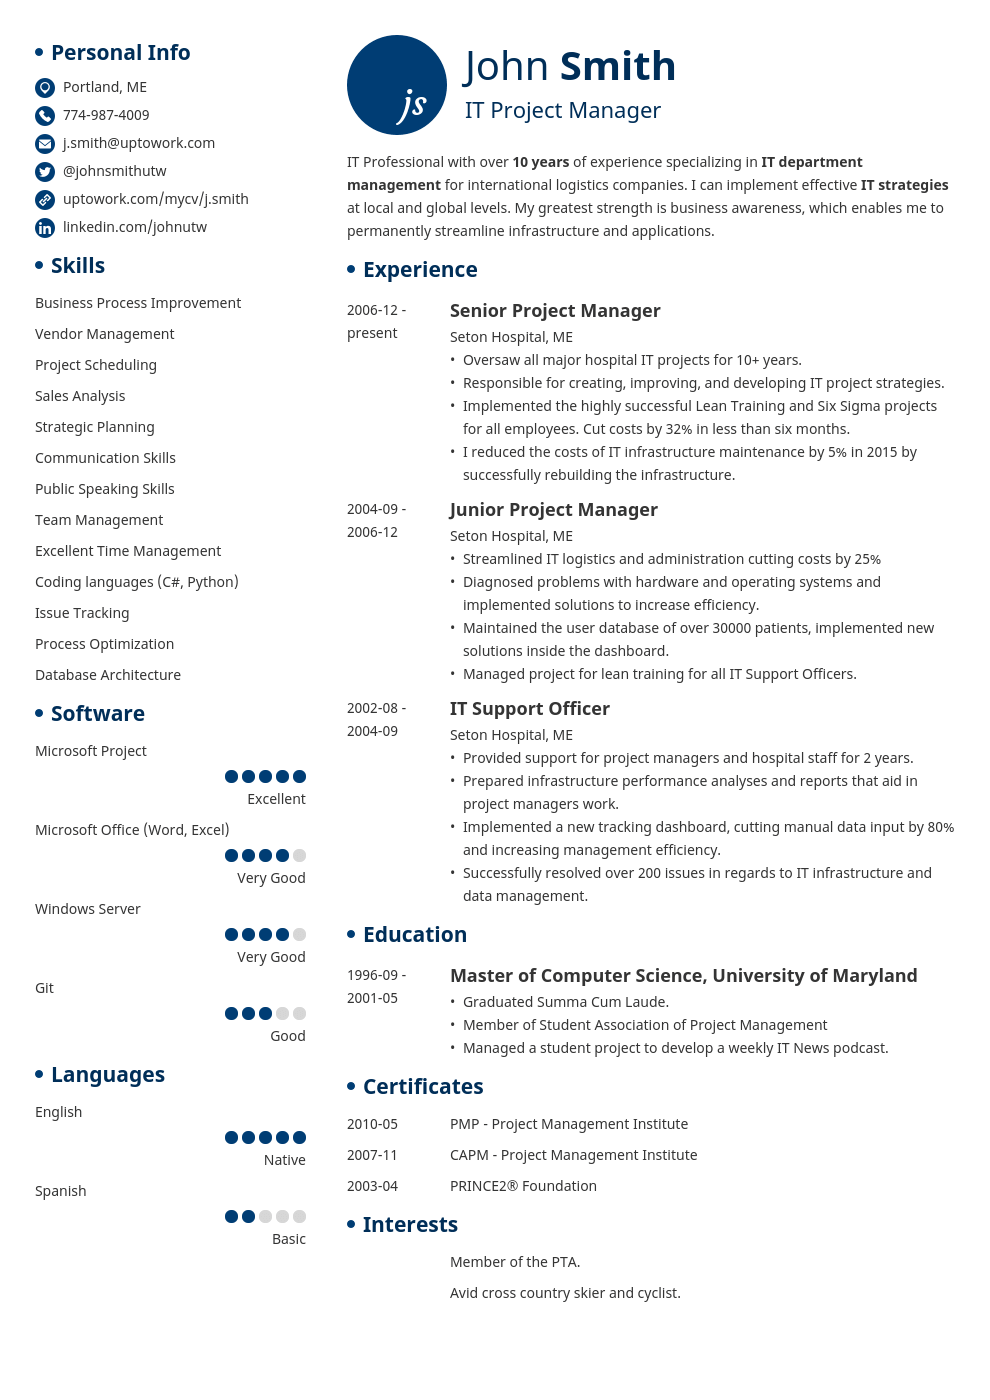 Superb Professional Resume Template Initials  Resume Tempate